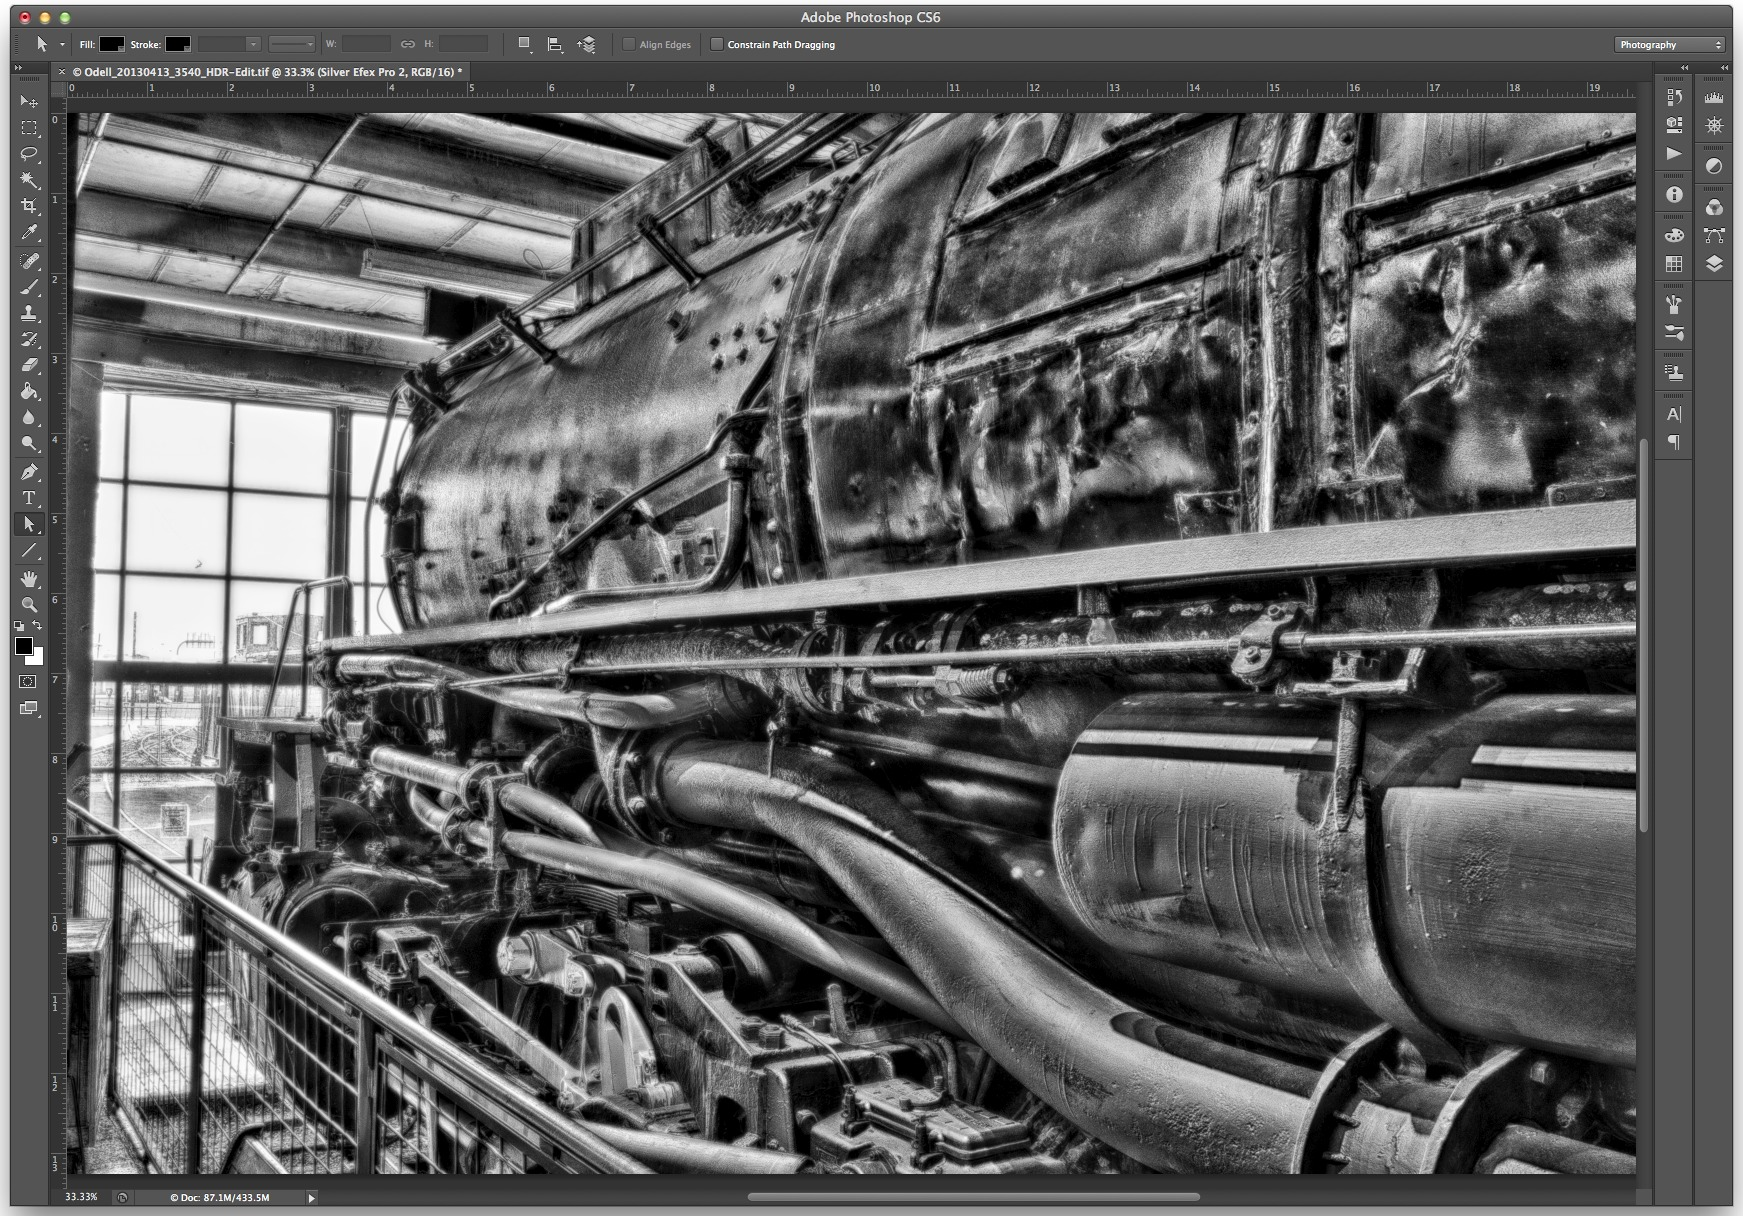 I used Silver Efex Pro 2 on the HDR image to convert to monochrome and enhance textures.